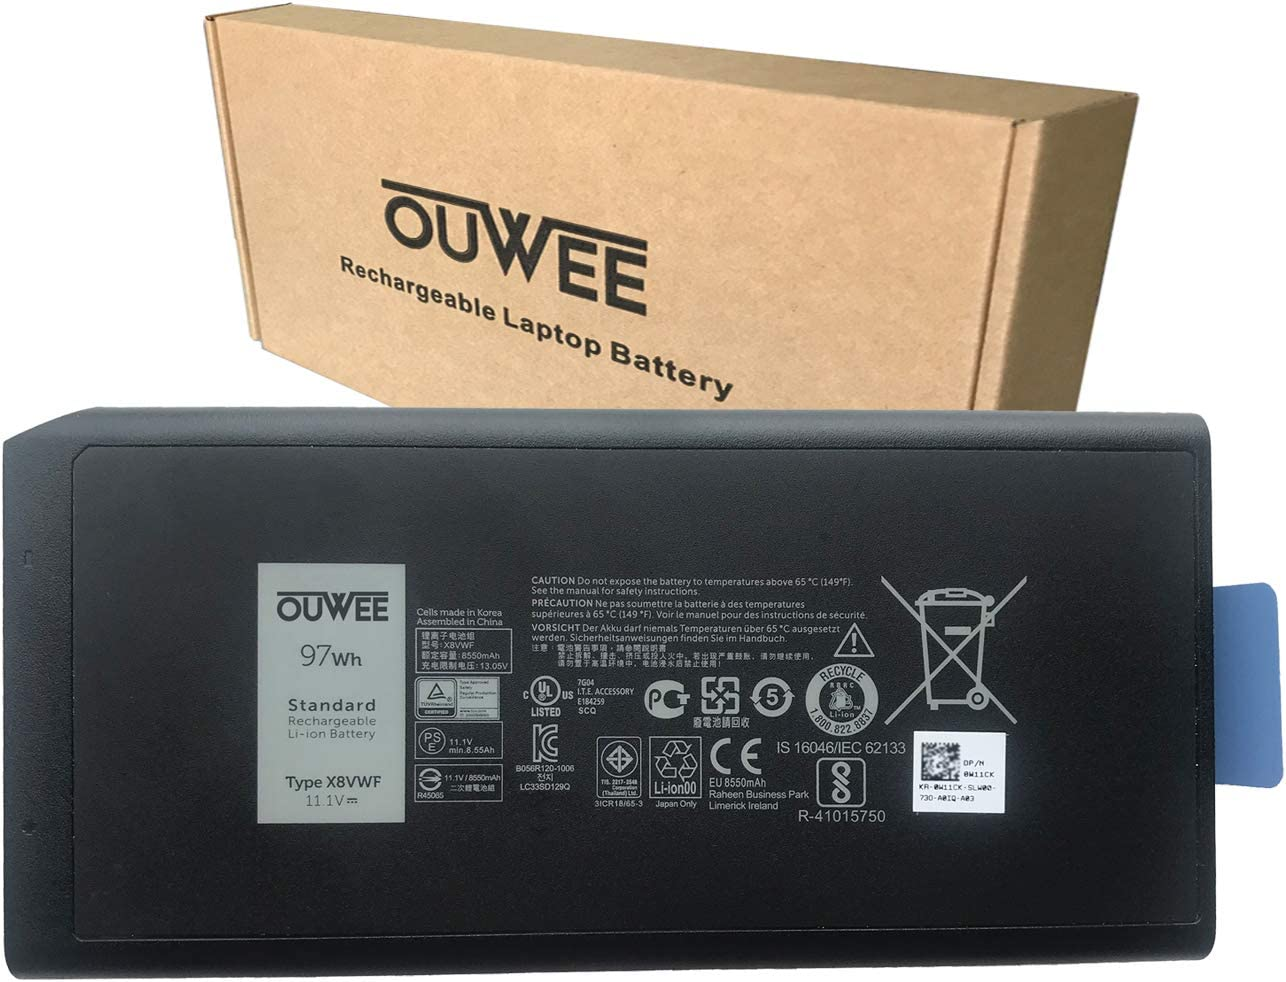 OUWEE X8VWF Laptop Battery Compatible with Dell Latitude 5404 7404 5414 7414 Rugged Extreme Series DKNKD 4XKN5 05XT3V 0VCHGN 09FN4 CJ2K1 XN4KN XRJDF YGV51 453-BBBE 0W11Y7 11.1V 97Wh 8550mAh 9-Cell